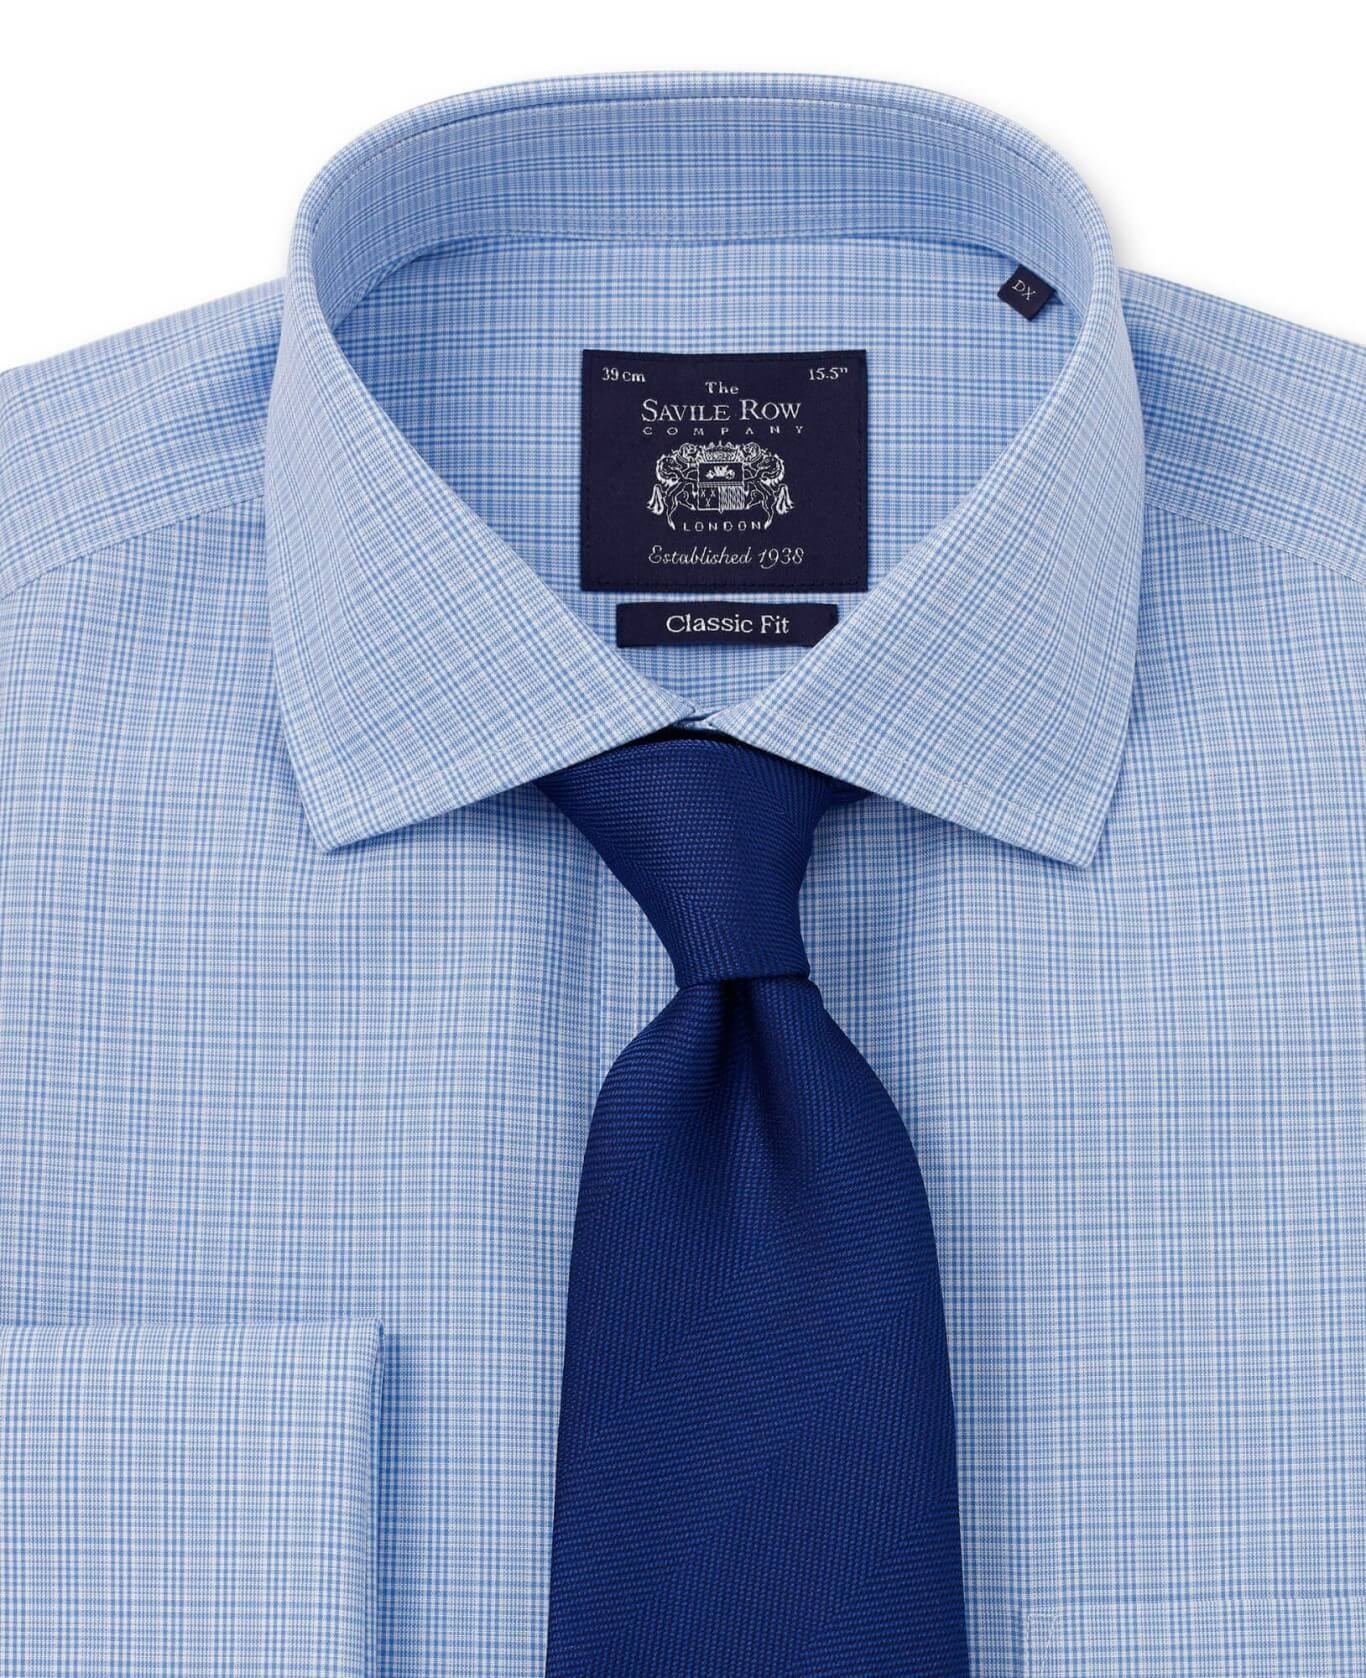 NON-IRON BLUE SMALL PRINCE OF WALES CHECK CLASSIC FIT SHIRT – SINGLE CUFF-966BLU